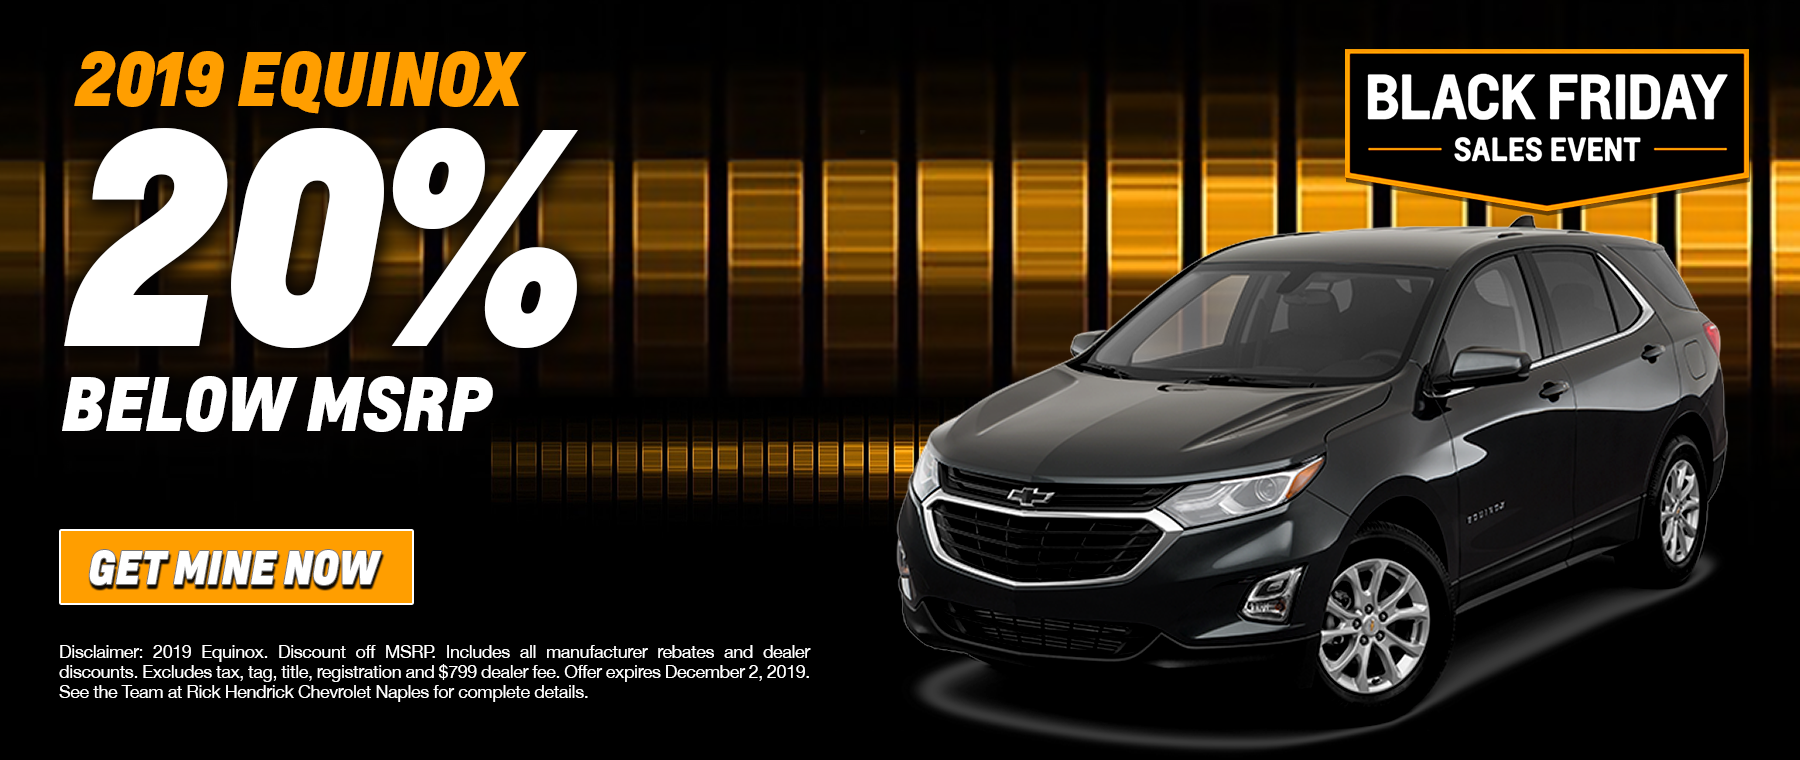 equinox special 20% below msrp chevy naples